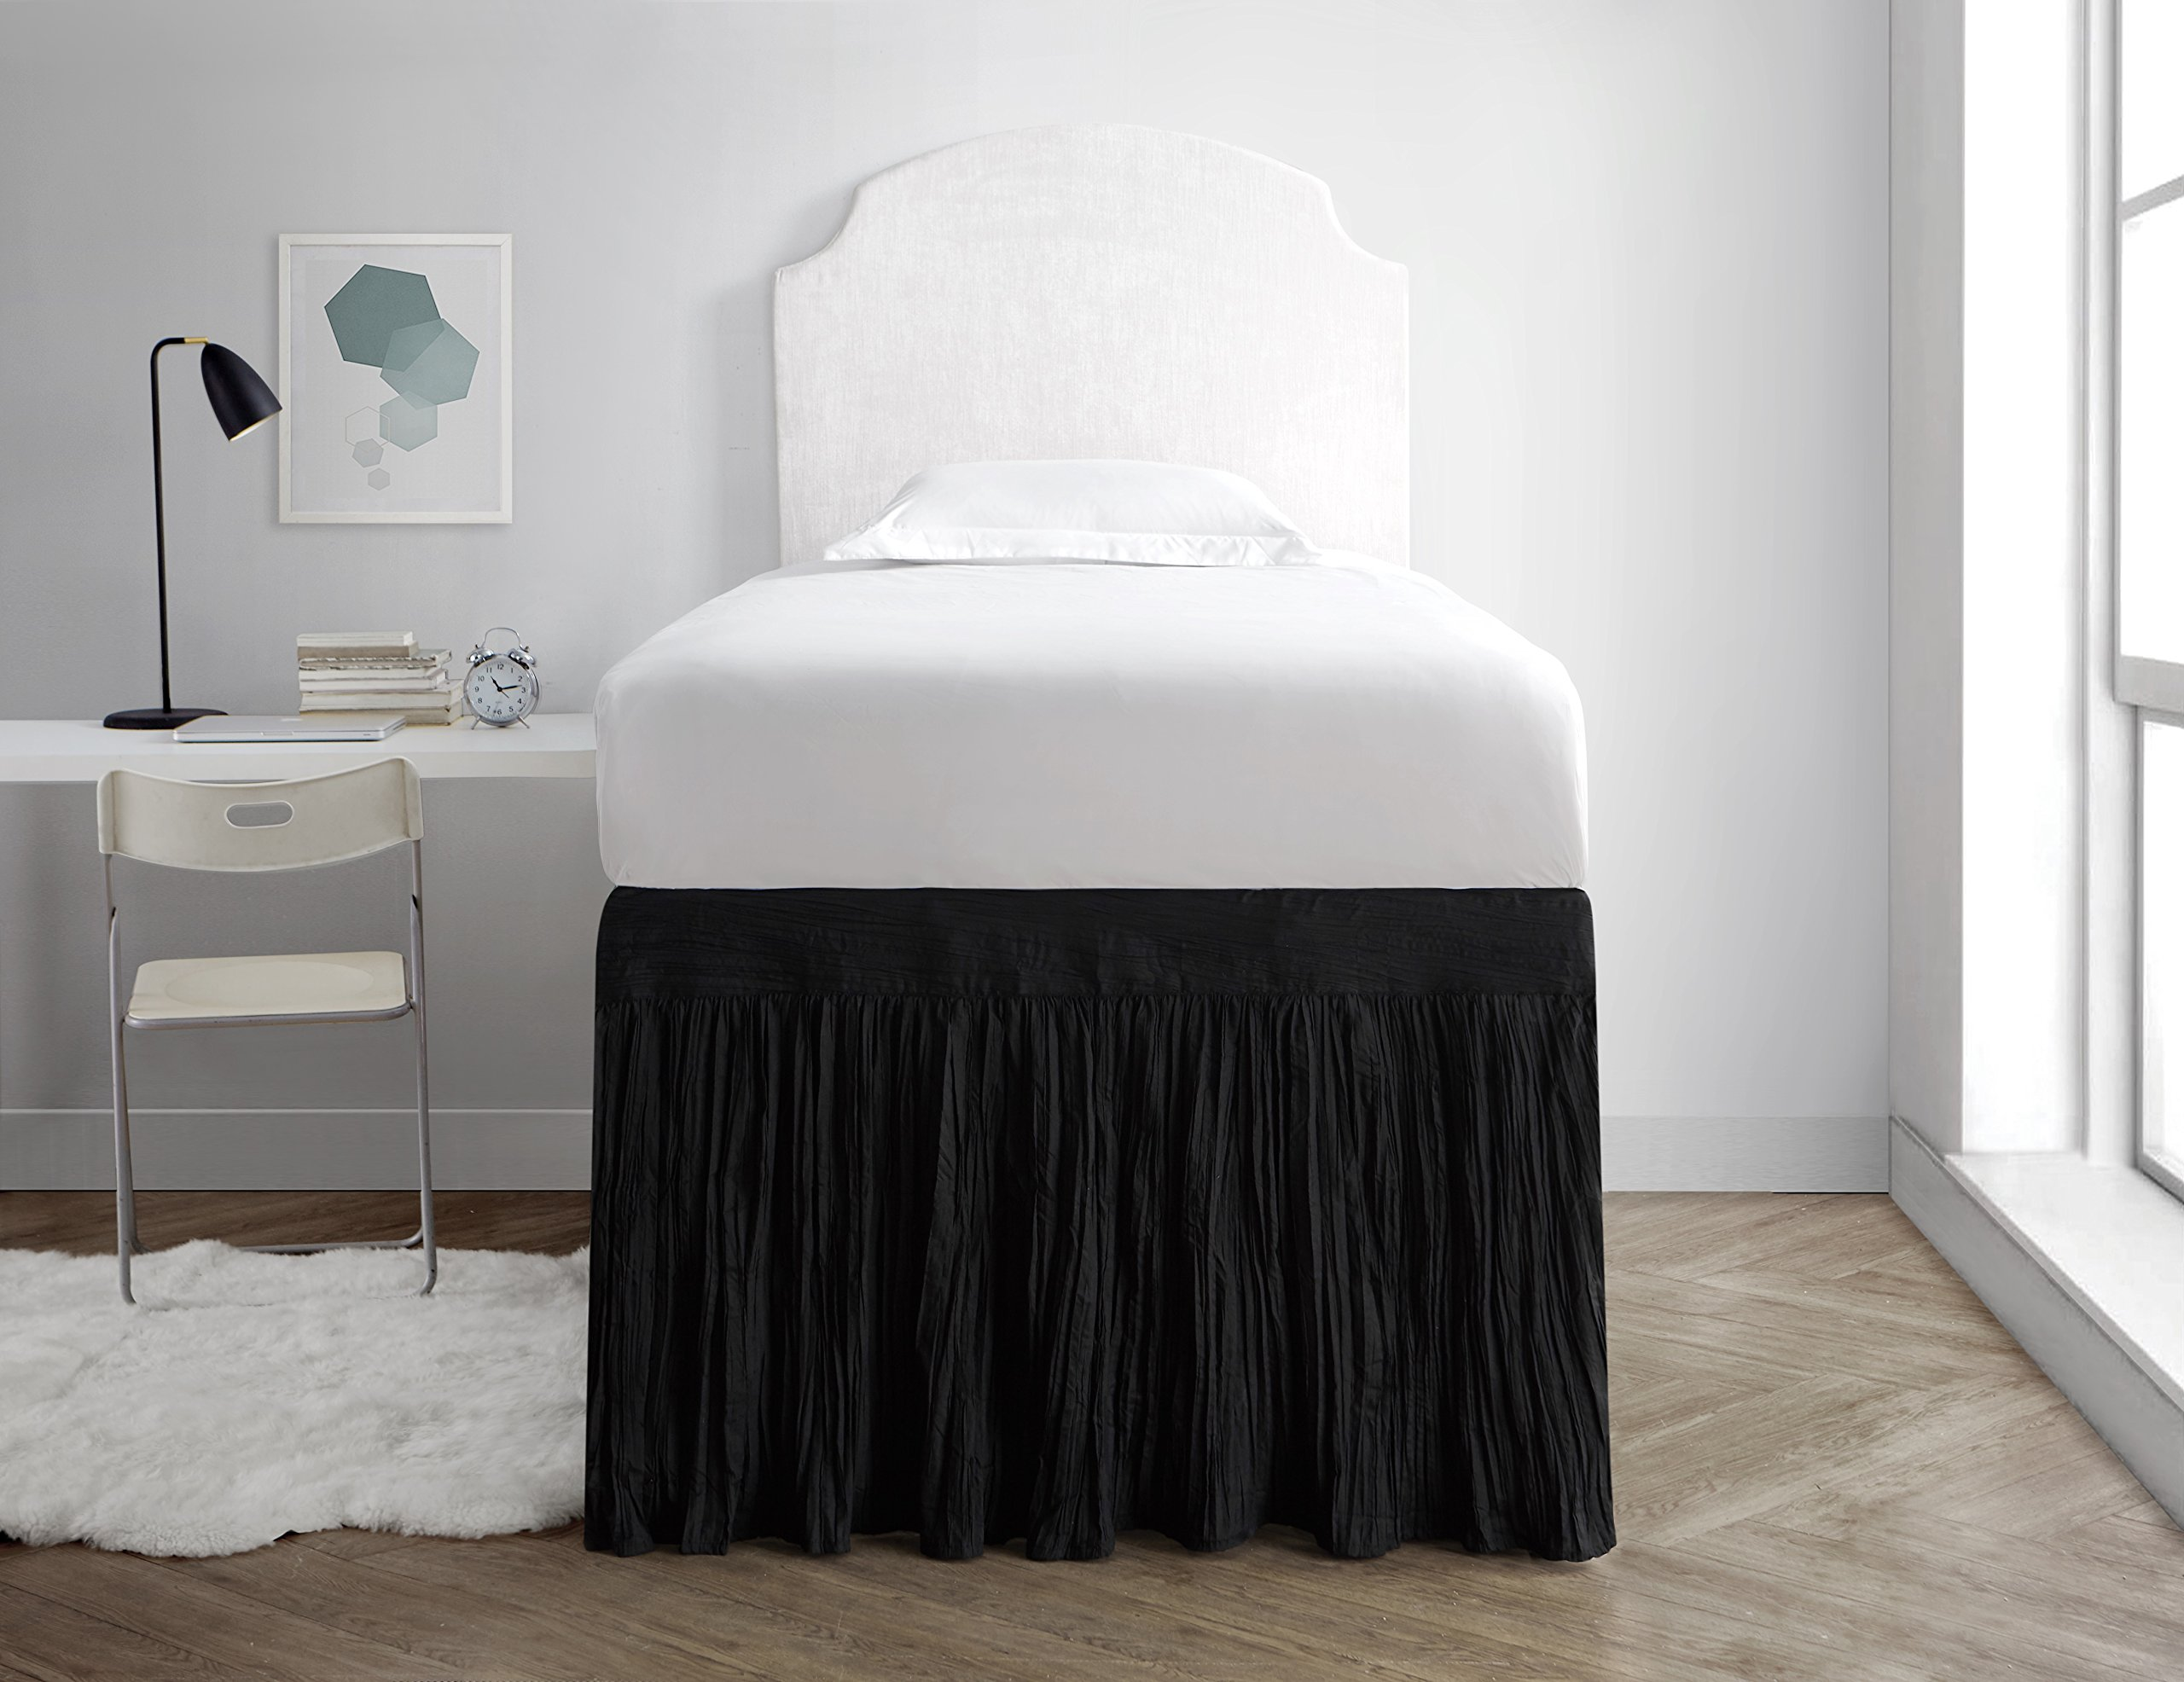 Crinkle Dorm Sized Bed Skirt Panel with Ties (1 Panel) - Black